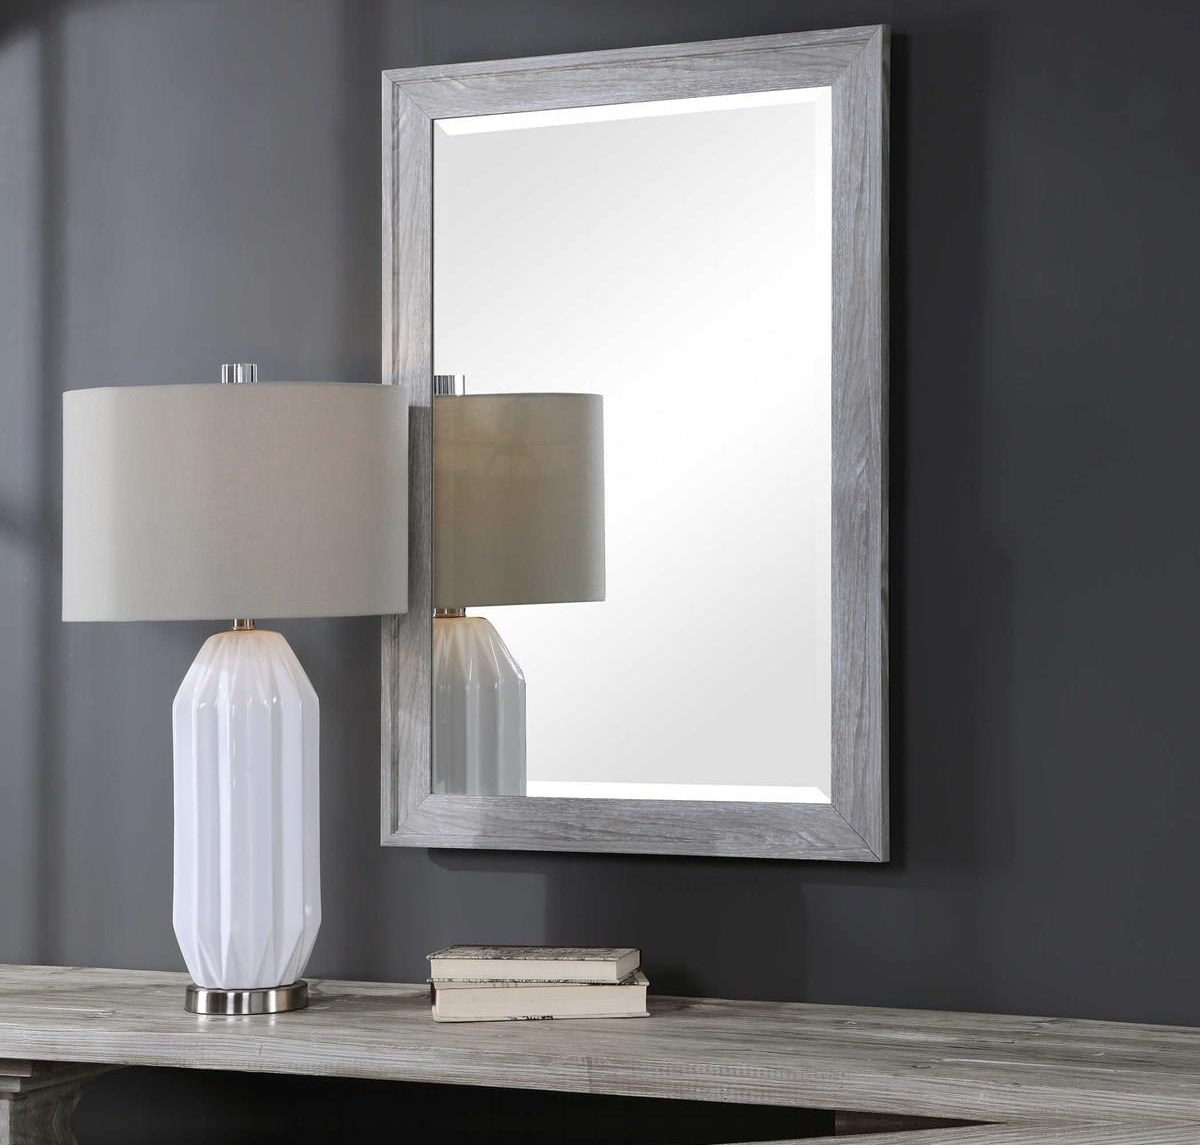 Mirrors IVY WALL MIRROR by Unique at Walker's Furniture